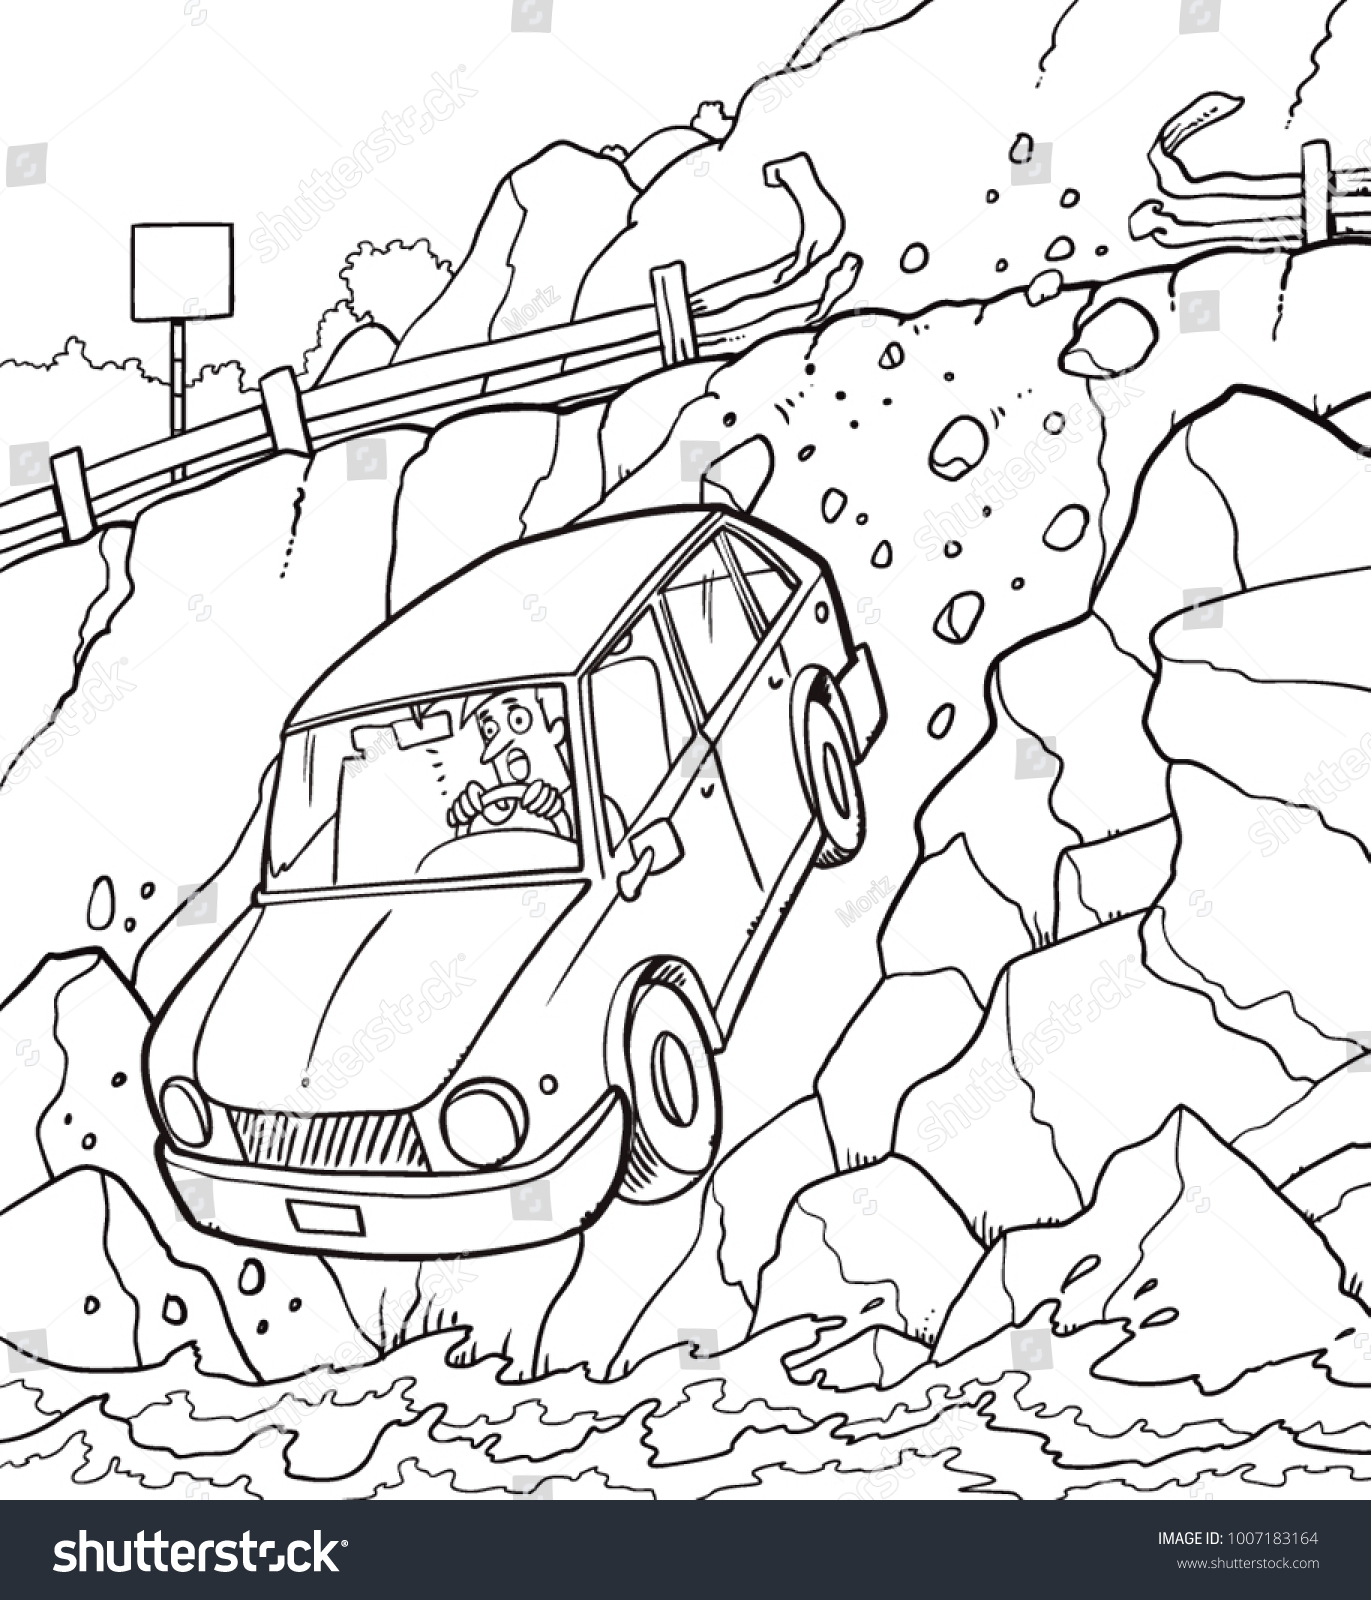 Magnificent How To Draw A Car Accident Inspiration - Electrical ...